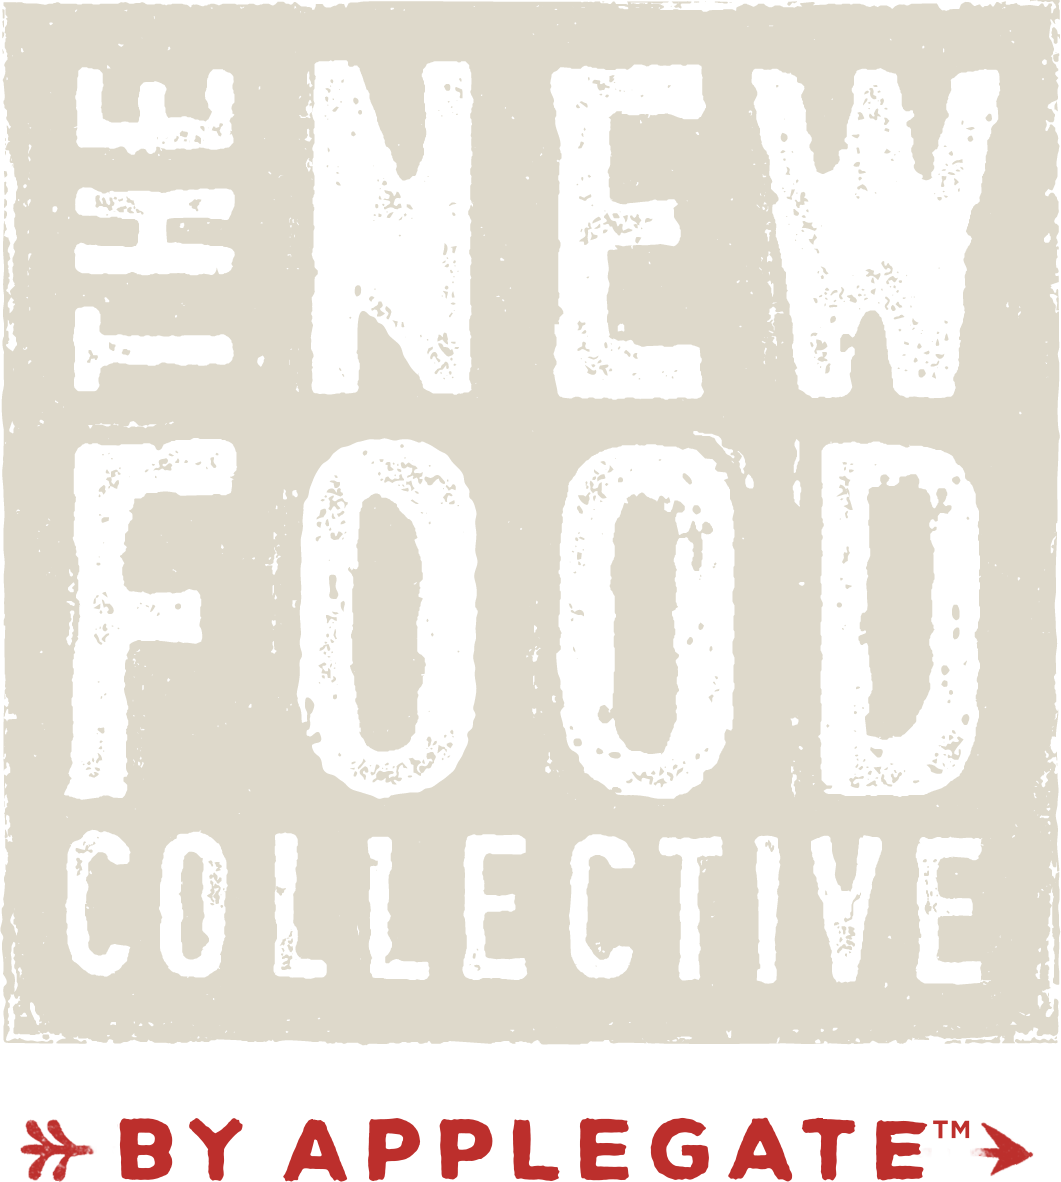 The New Food Collective